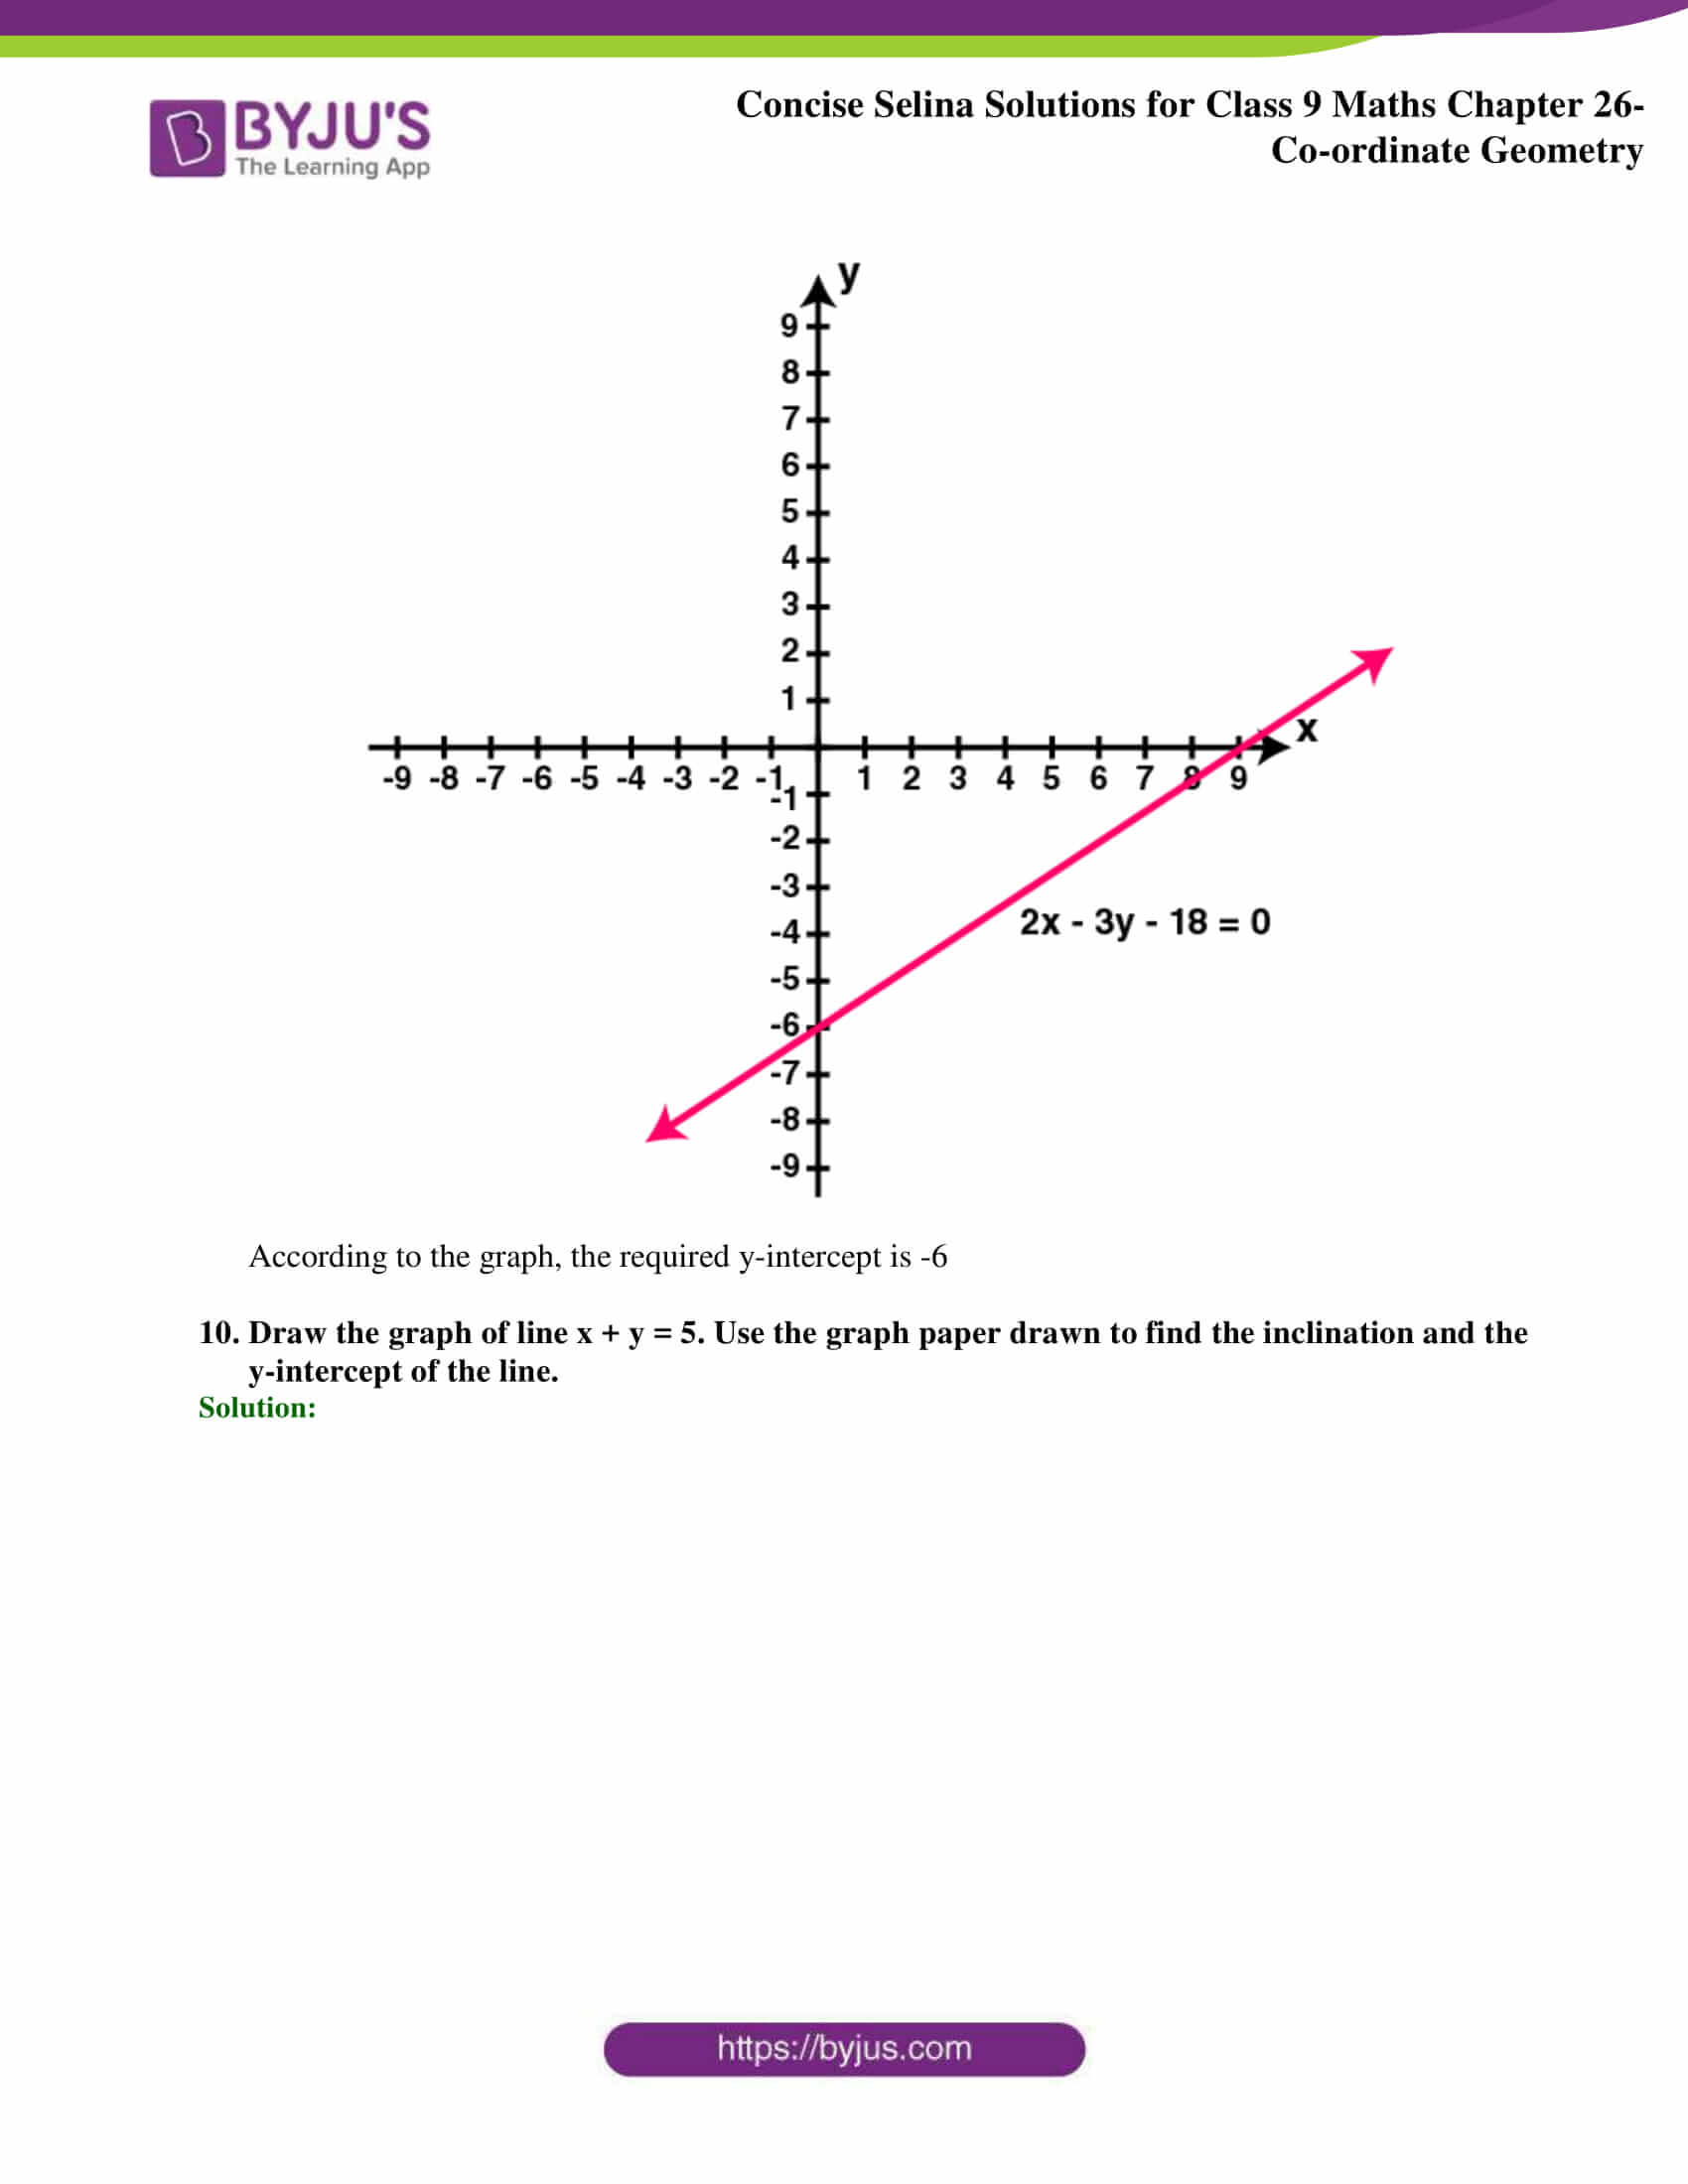 Selina Solutions for Class 9 Maths Chapter 26 part 52